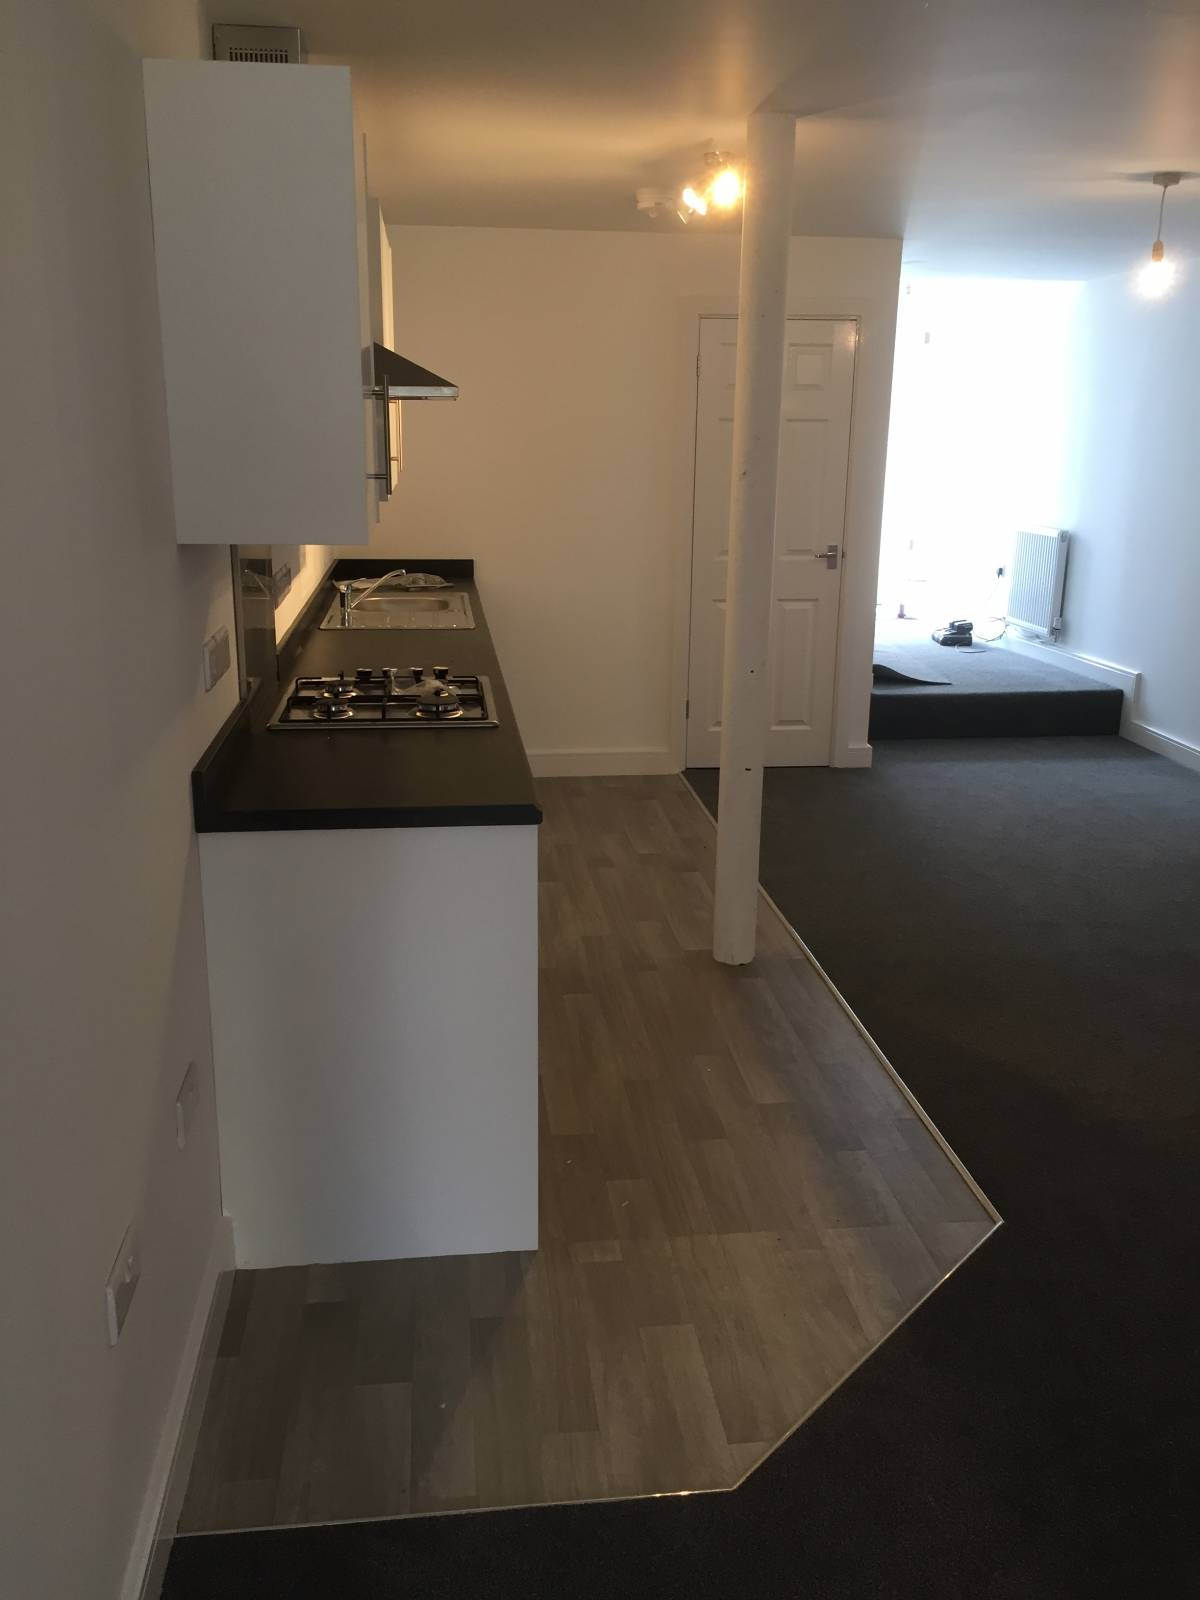 New Build. 3 Bedroom Apartment. Allocated Parking